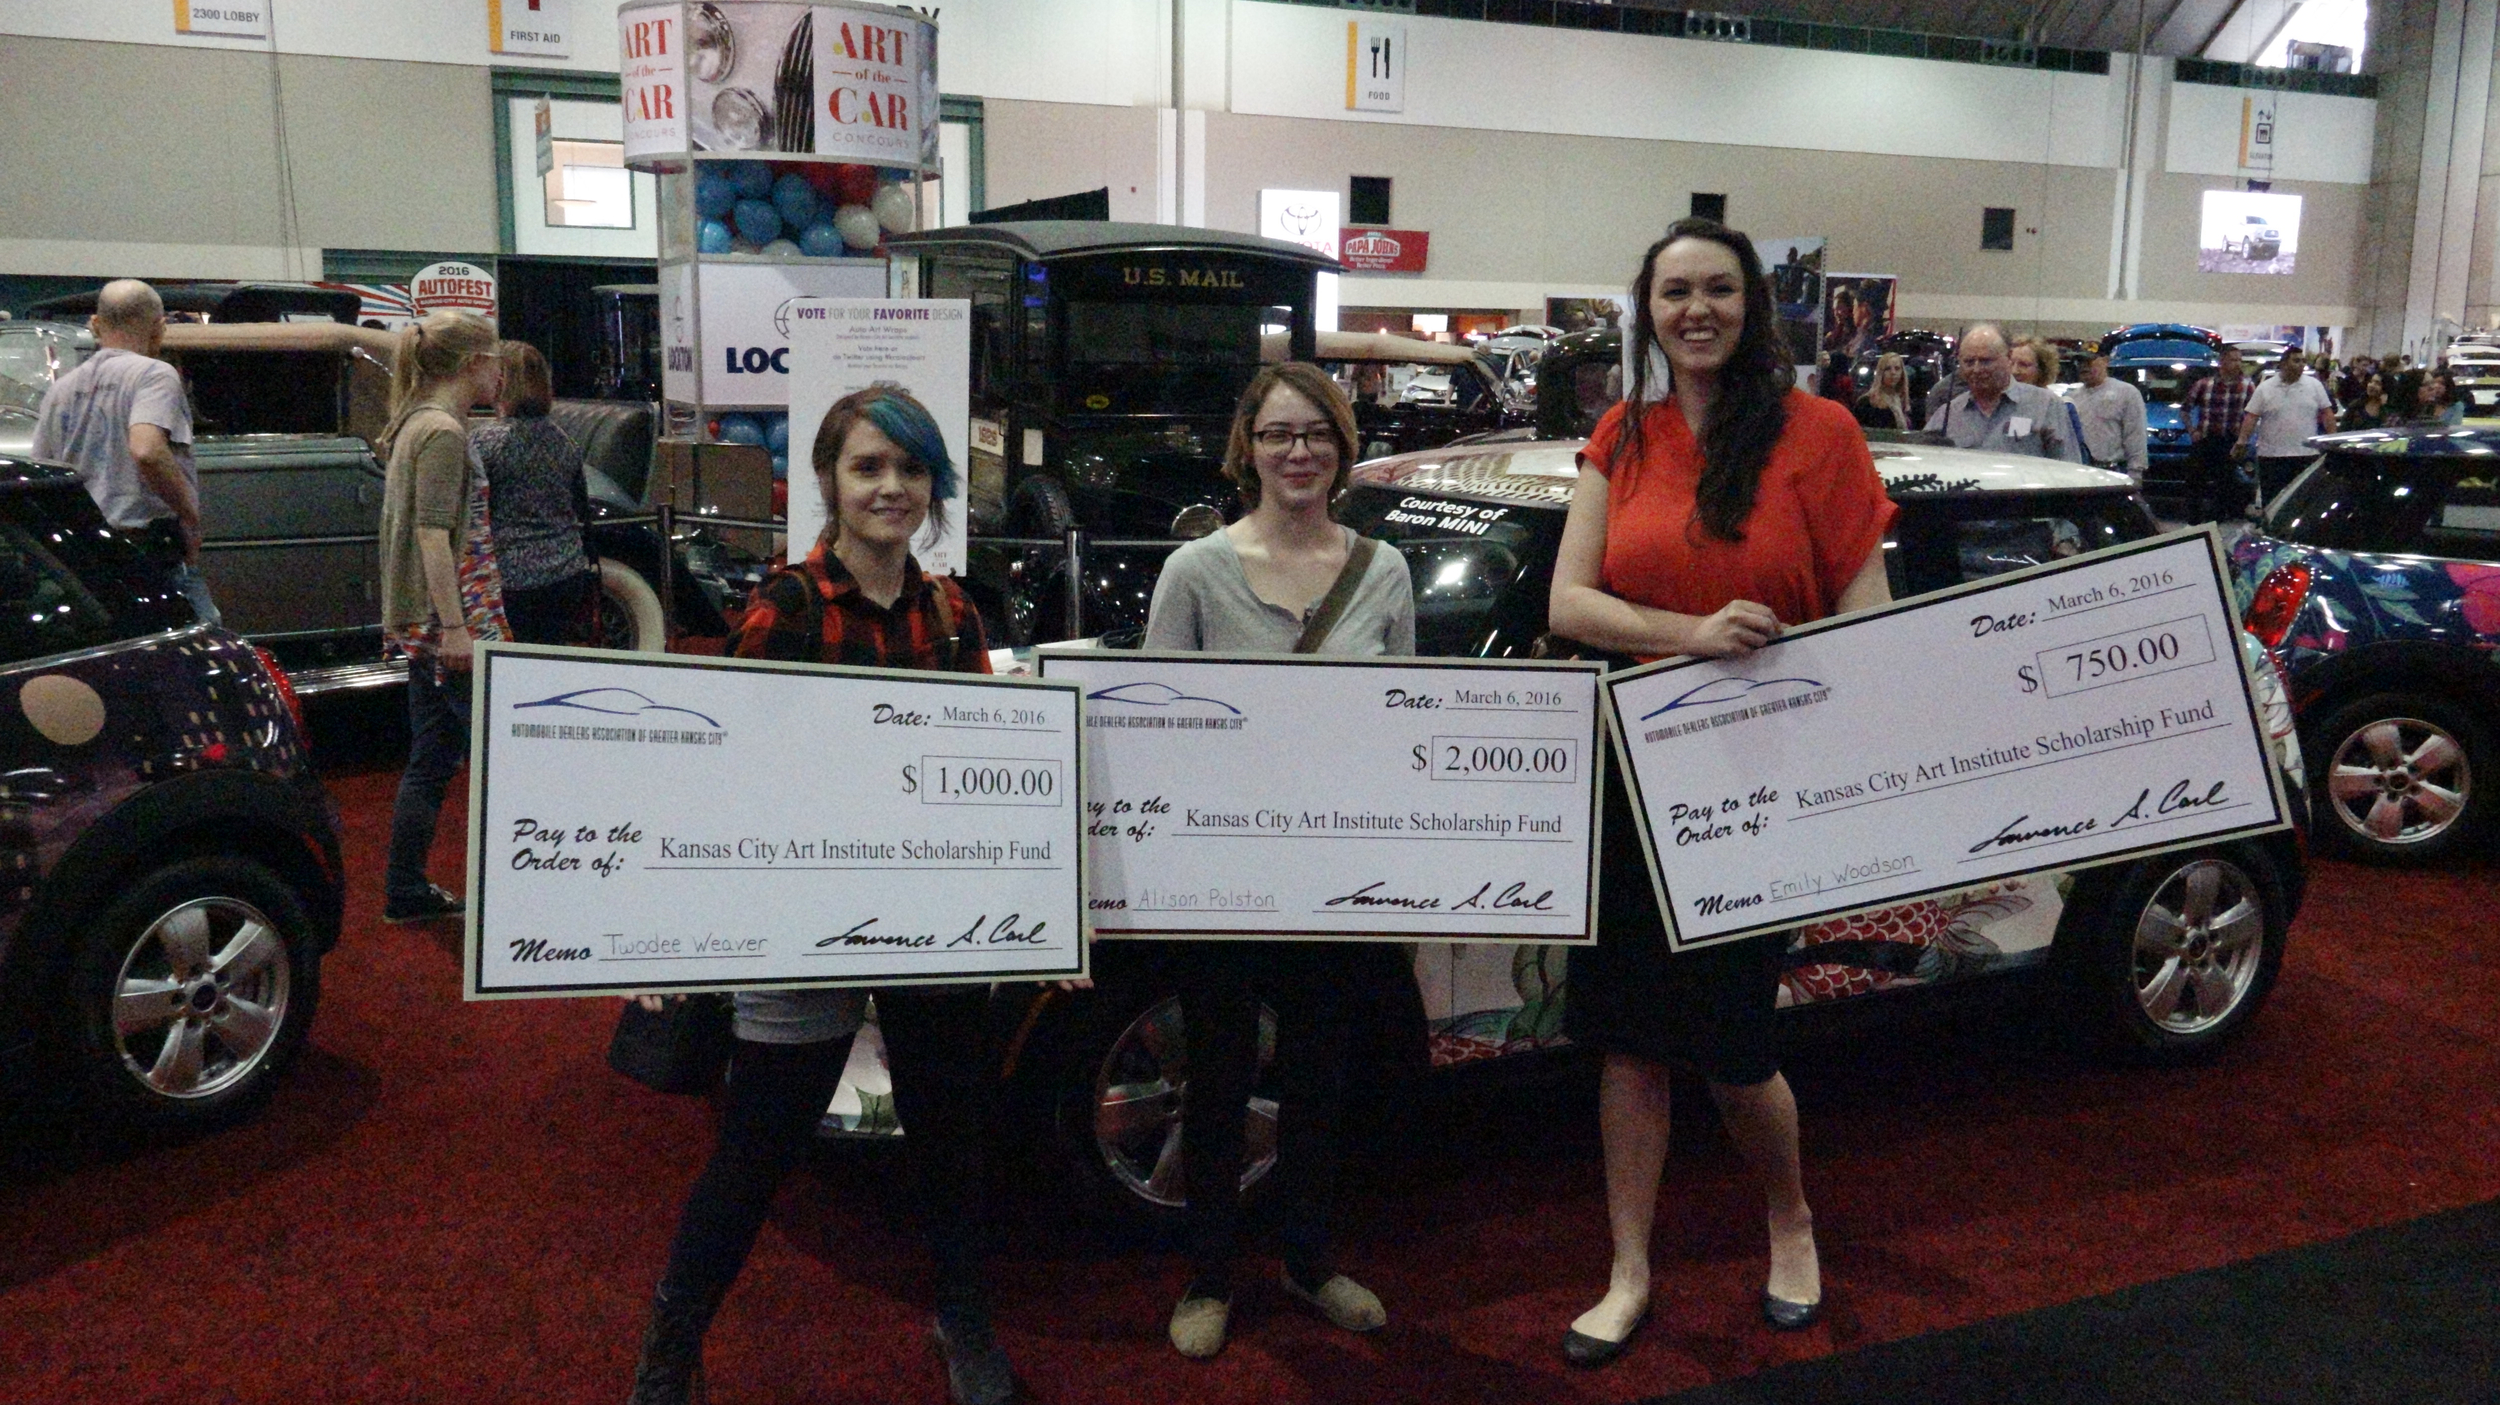 The three winners. From left to right, Twodee Weaver, Alison Polston and Emily Woodson.